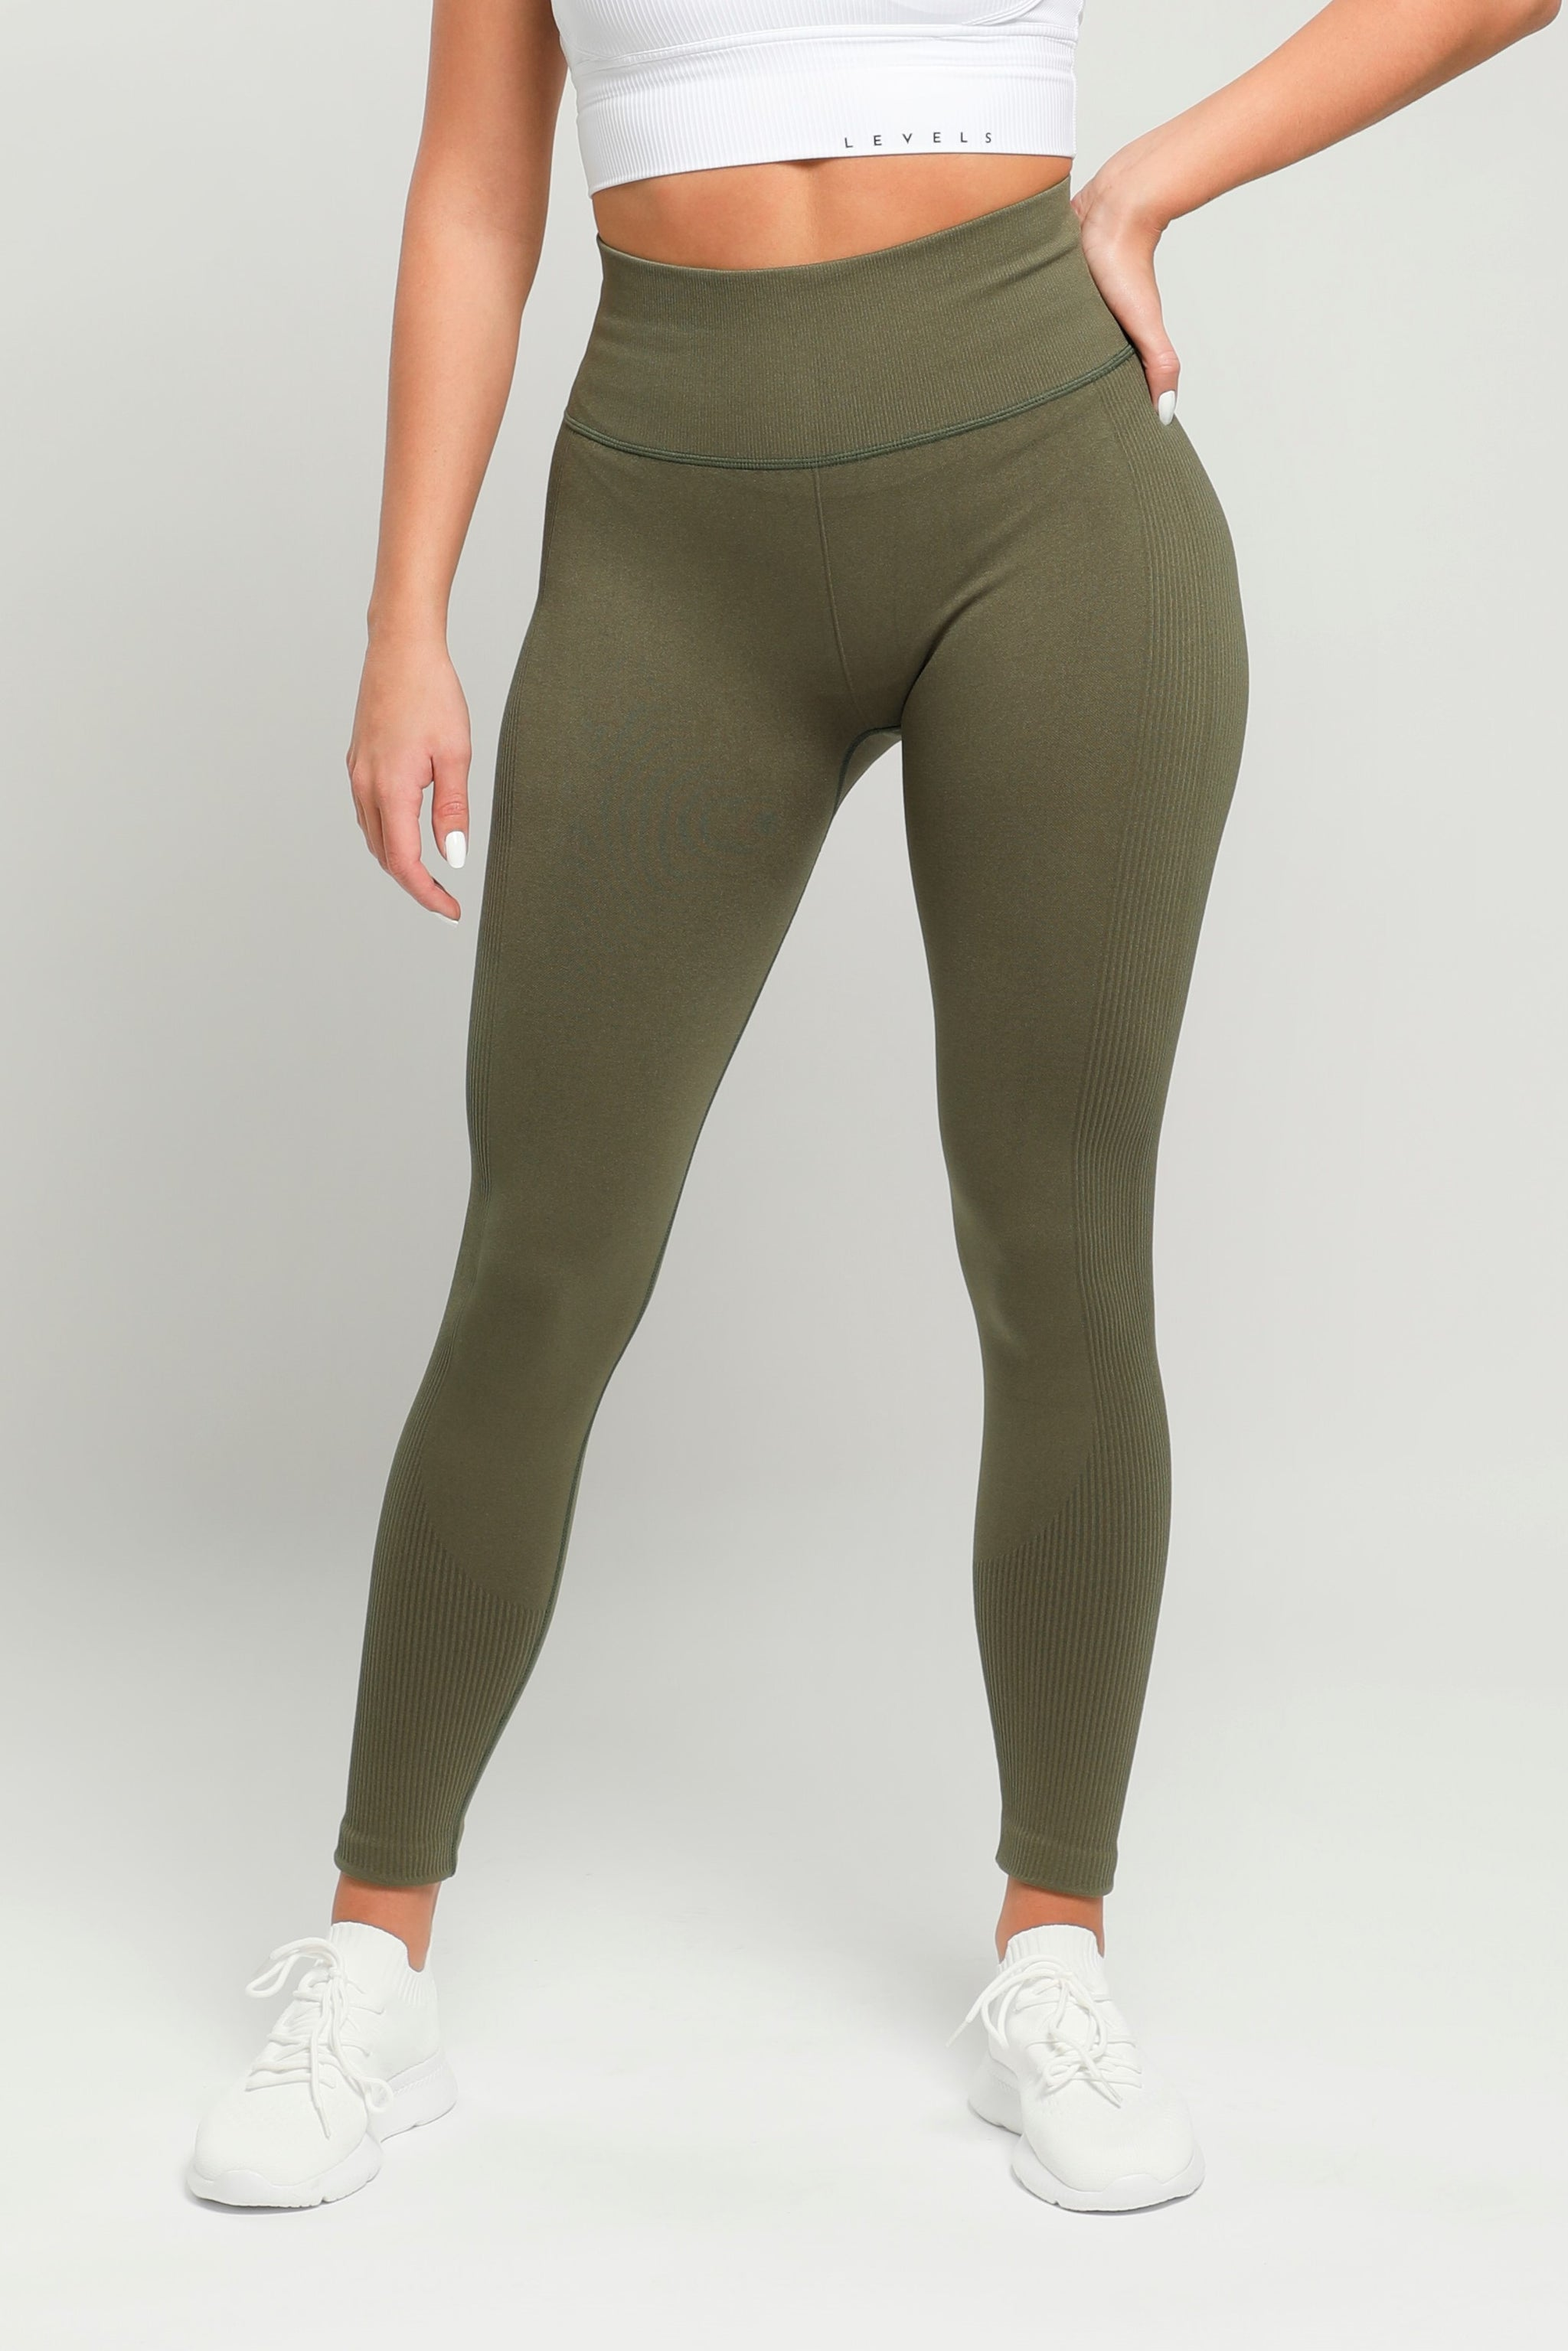 Green Energy High Waisted Leggings